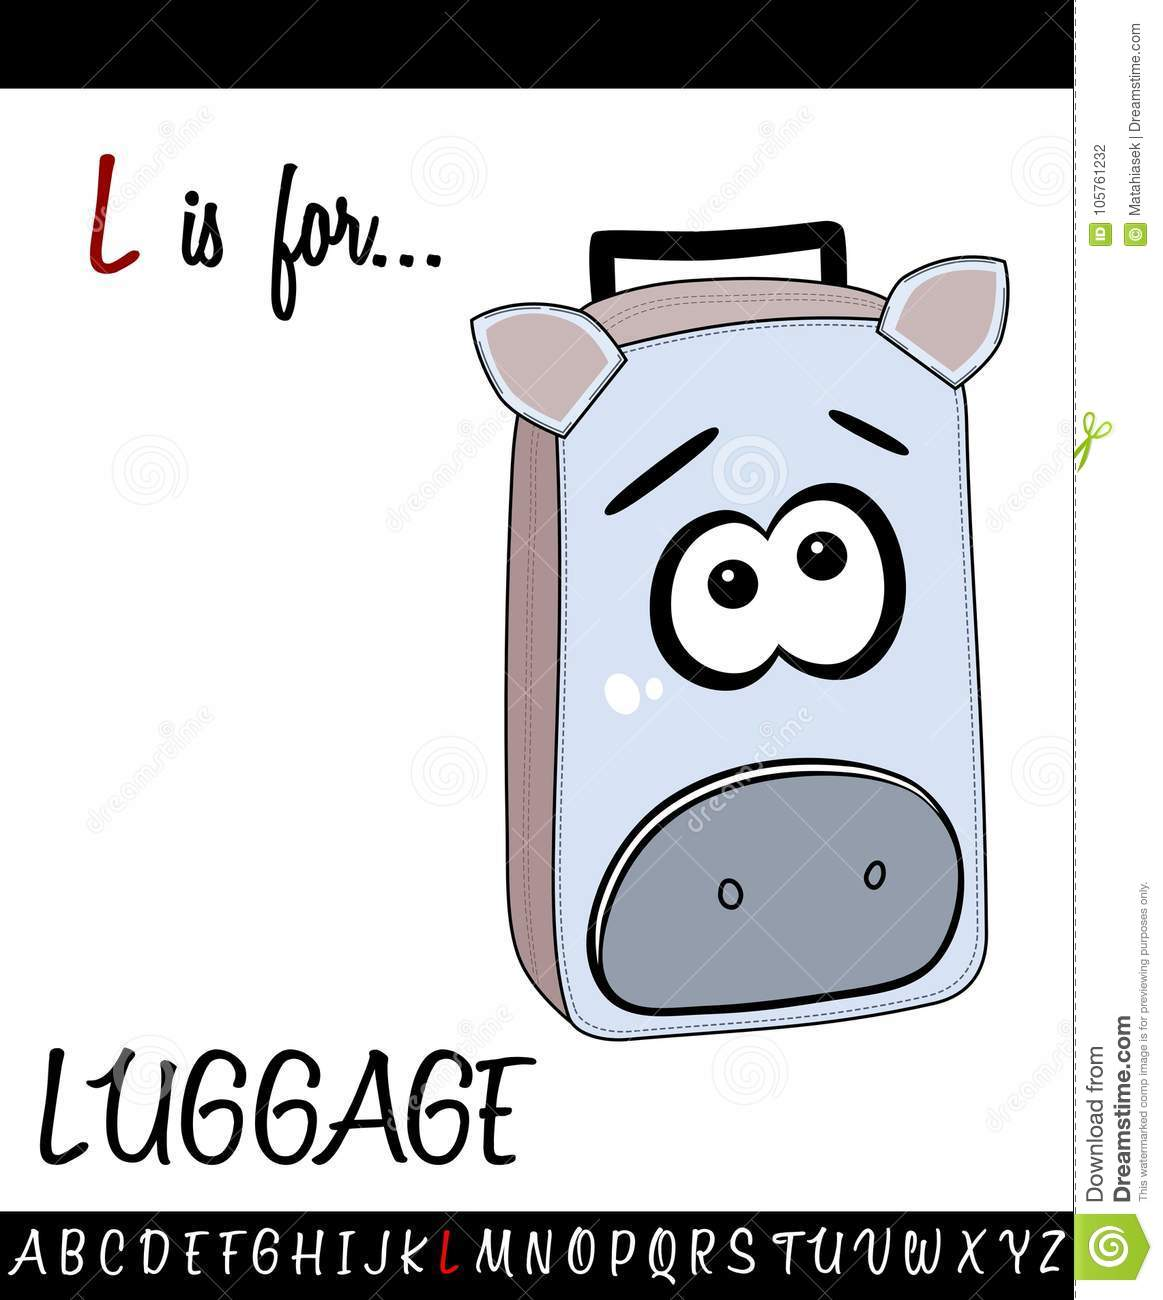 Illustrated Vocabulary Worksheet Card With Cartoon Luggage